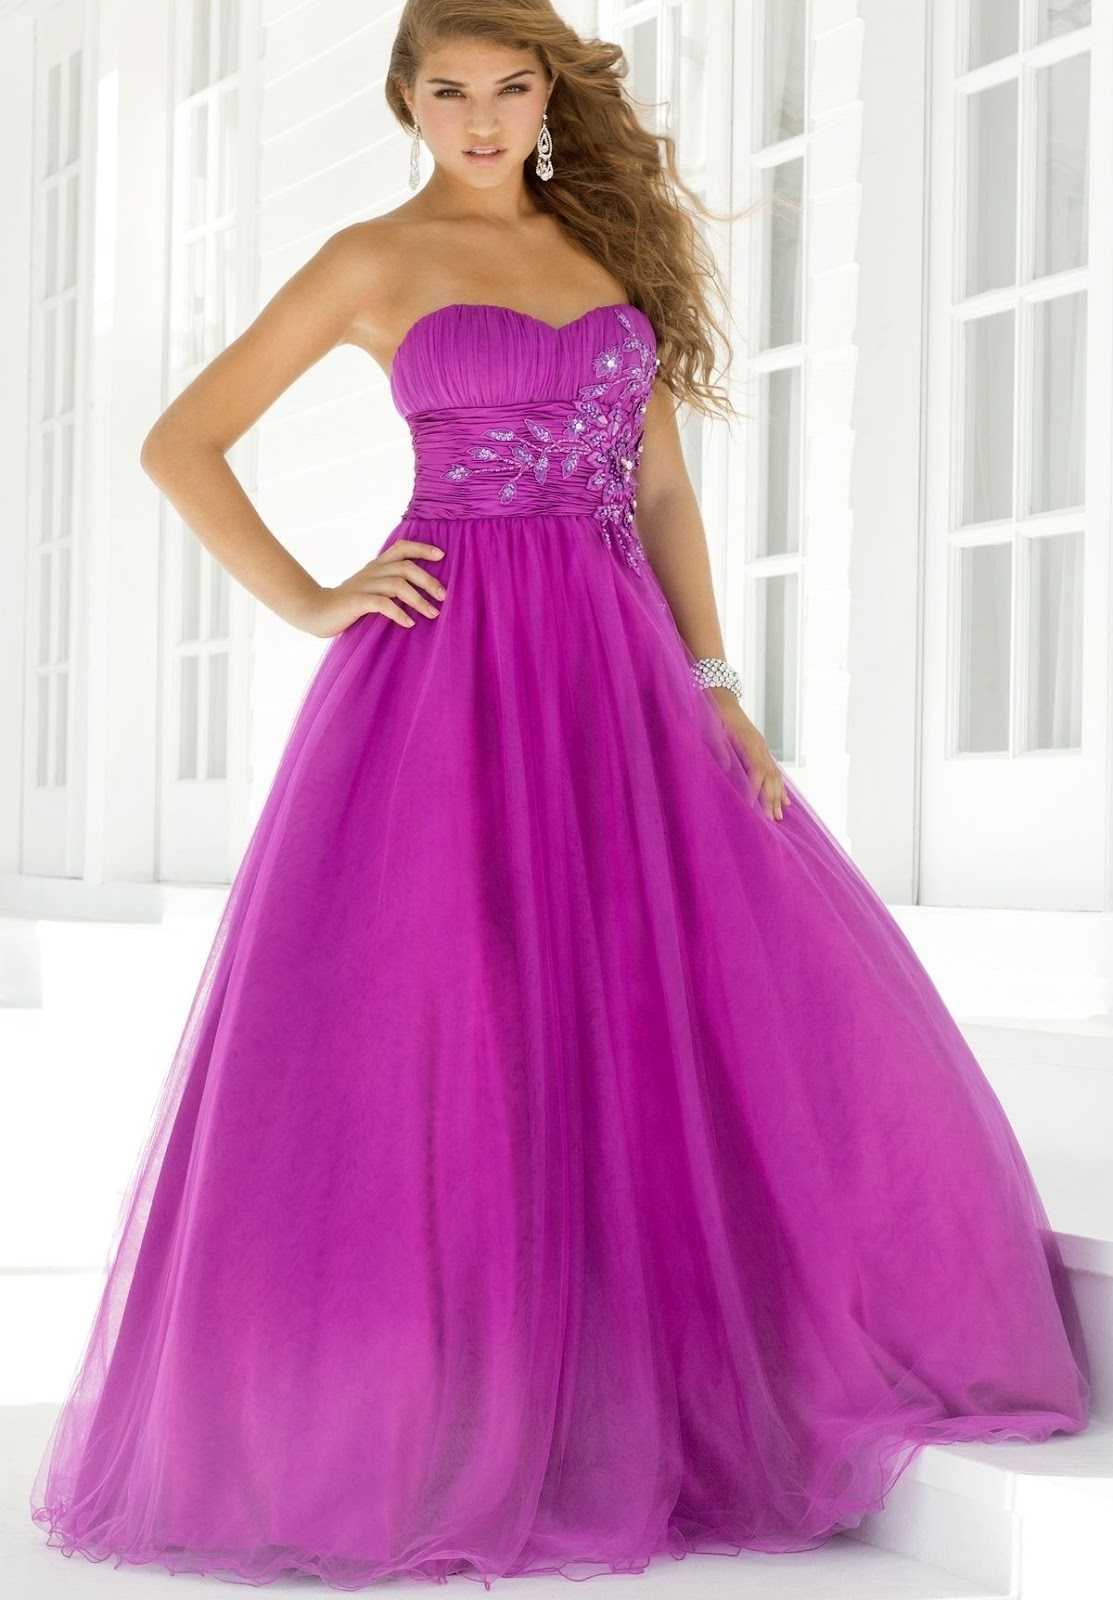 WhiteAzalea Ball Gowns: Smart Choice with Fashionable Ball ...